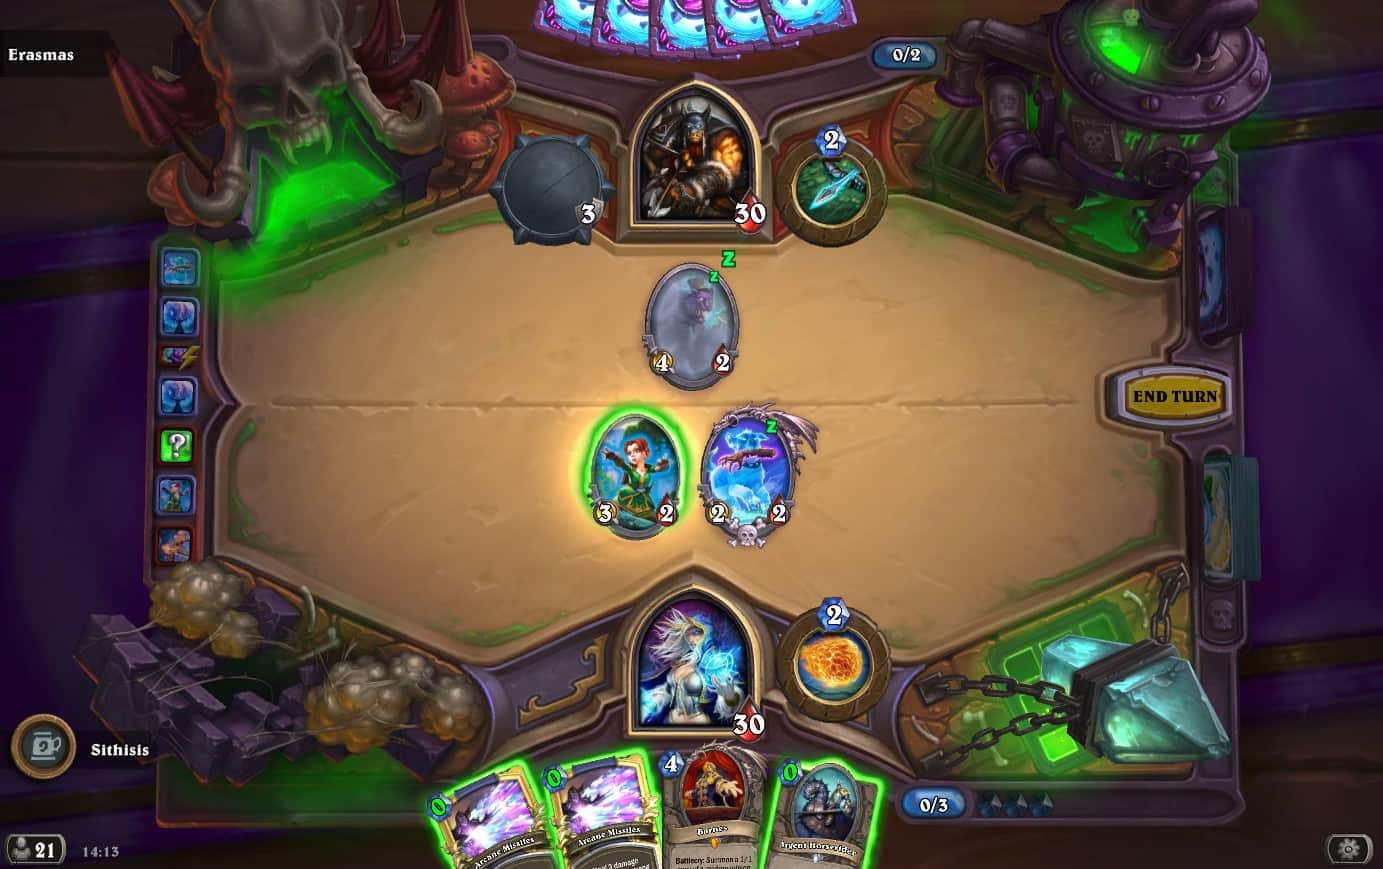 Hearthstone: Unstable Portals Take Over This Week's Tavern Brawl 1